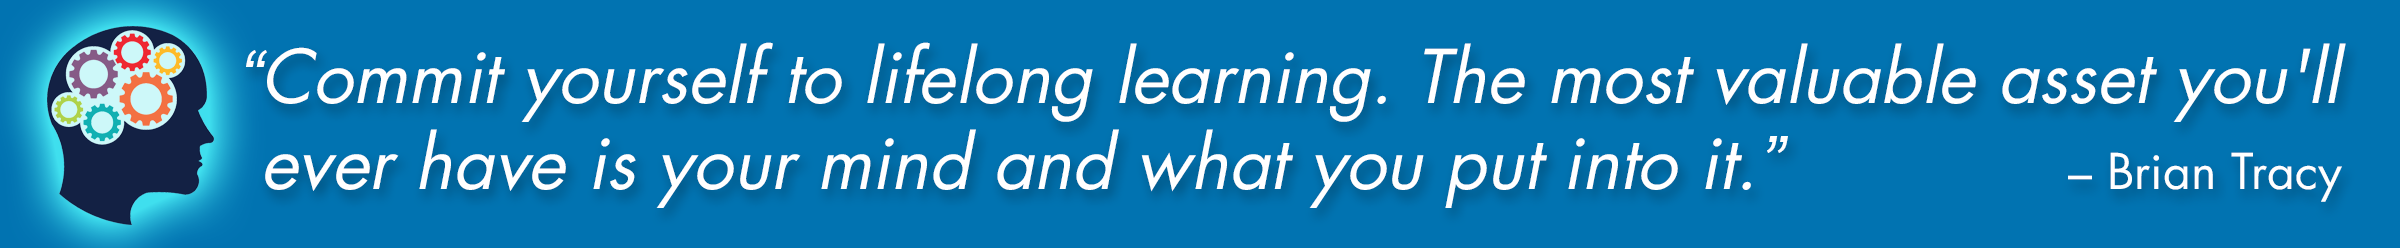 Brian Tracy quote - Commit to lifelong learning.